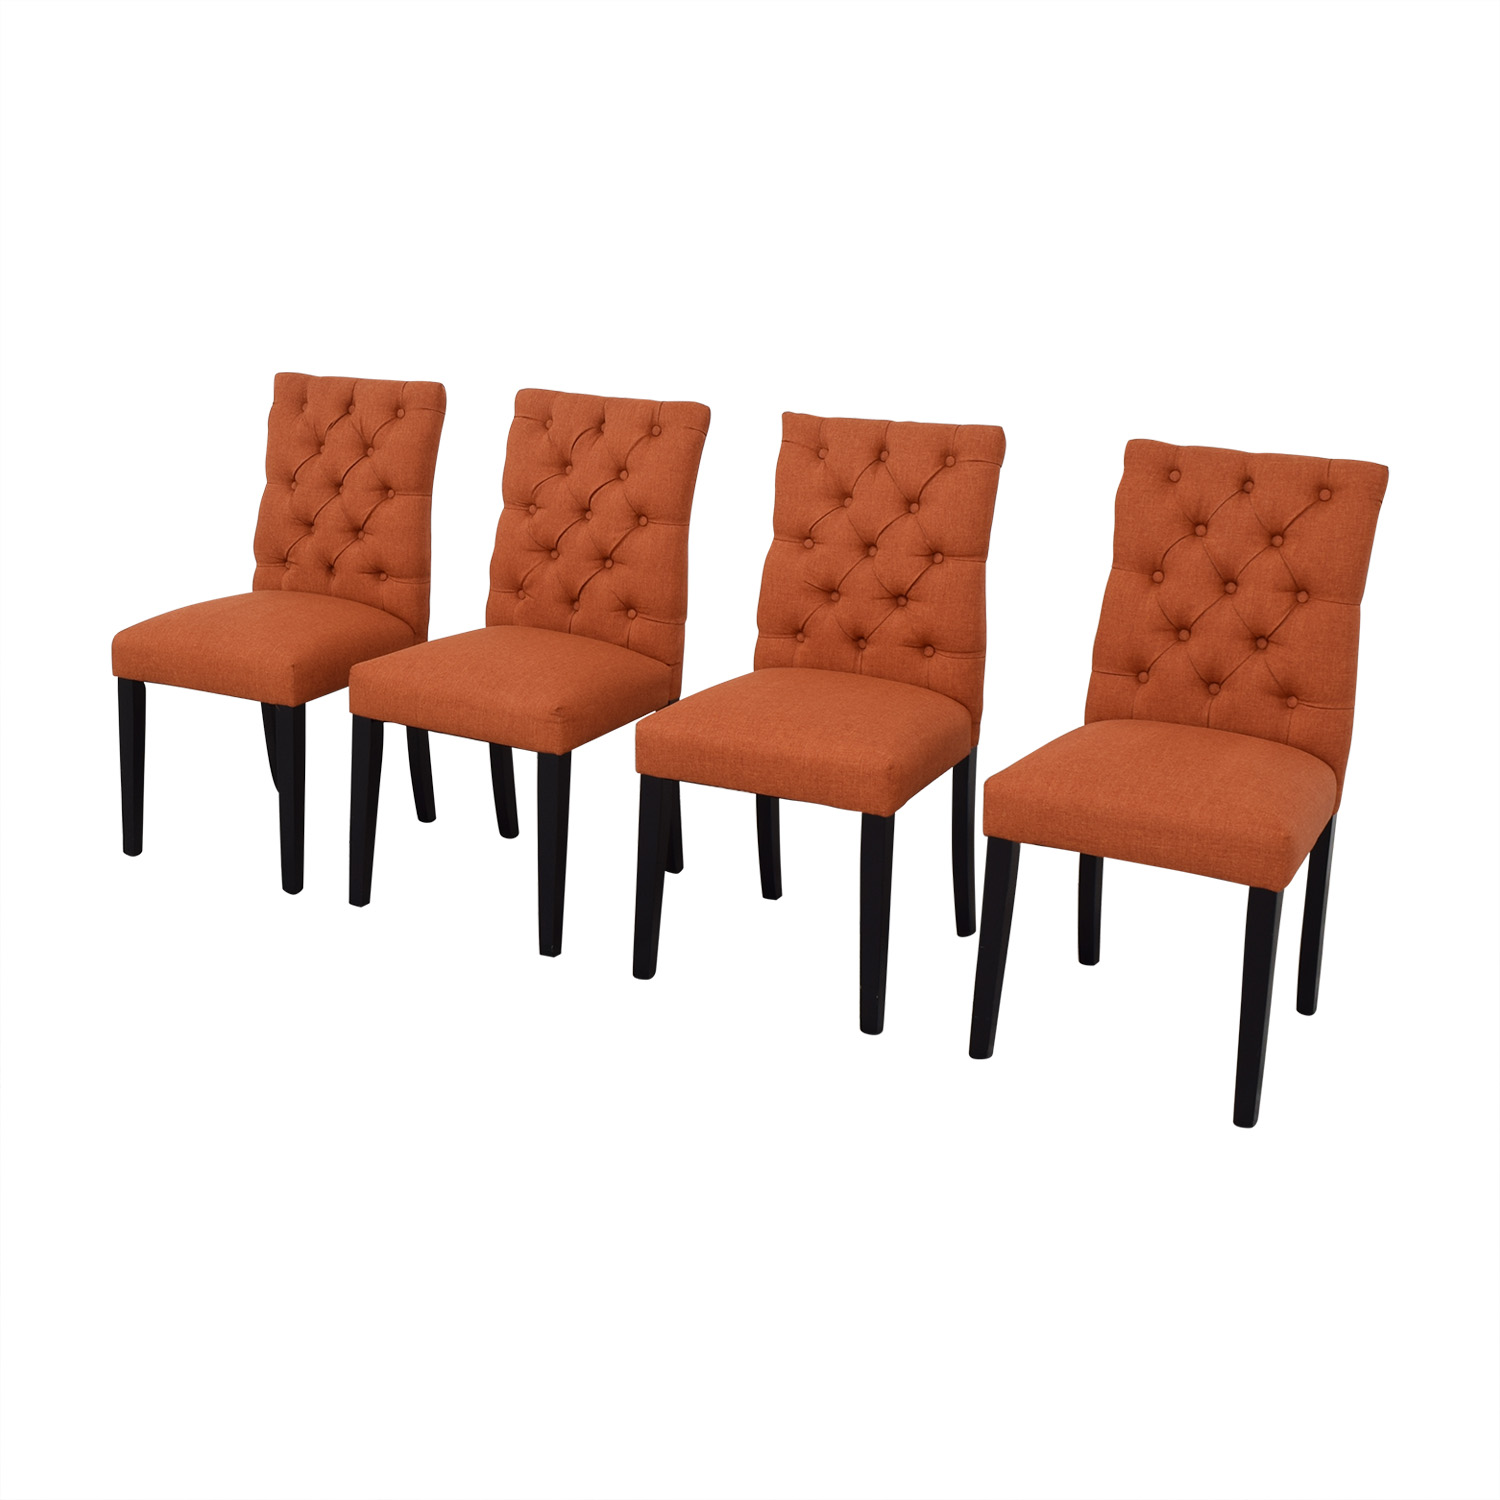 buy Modway Confer Dining Chairs Modway